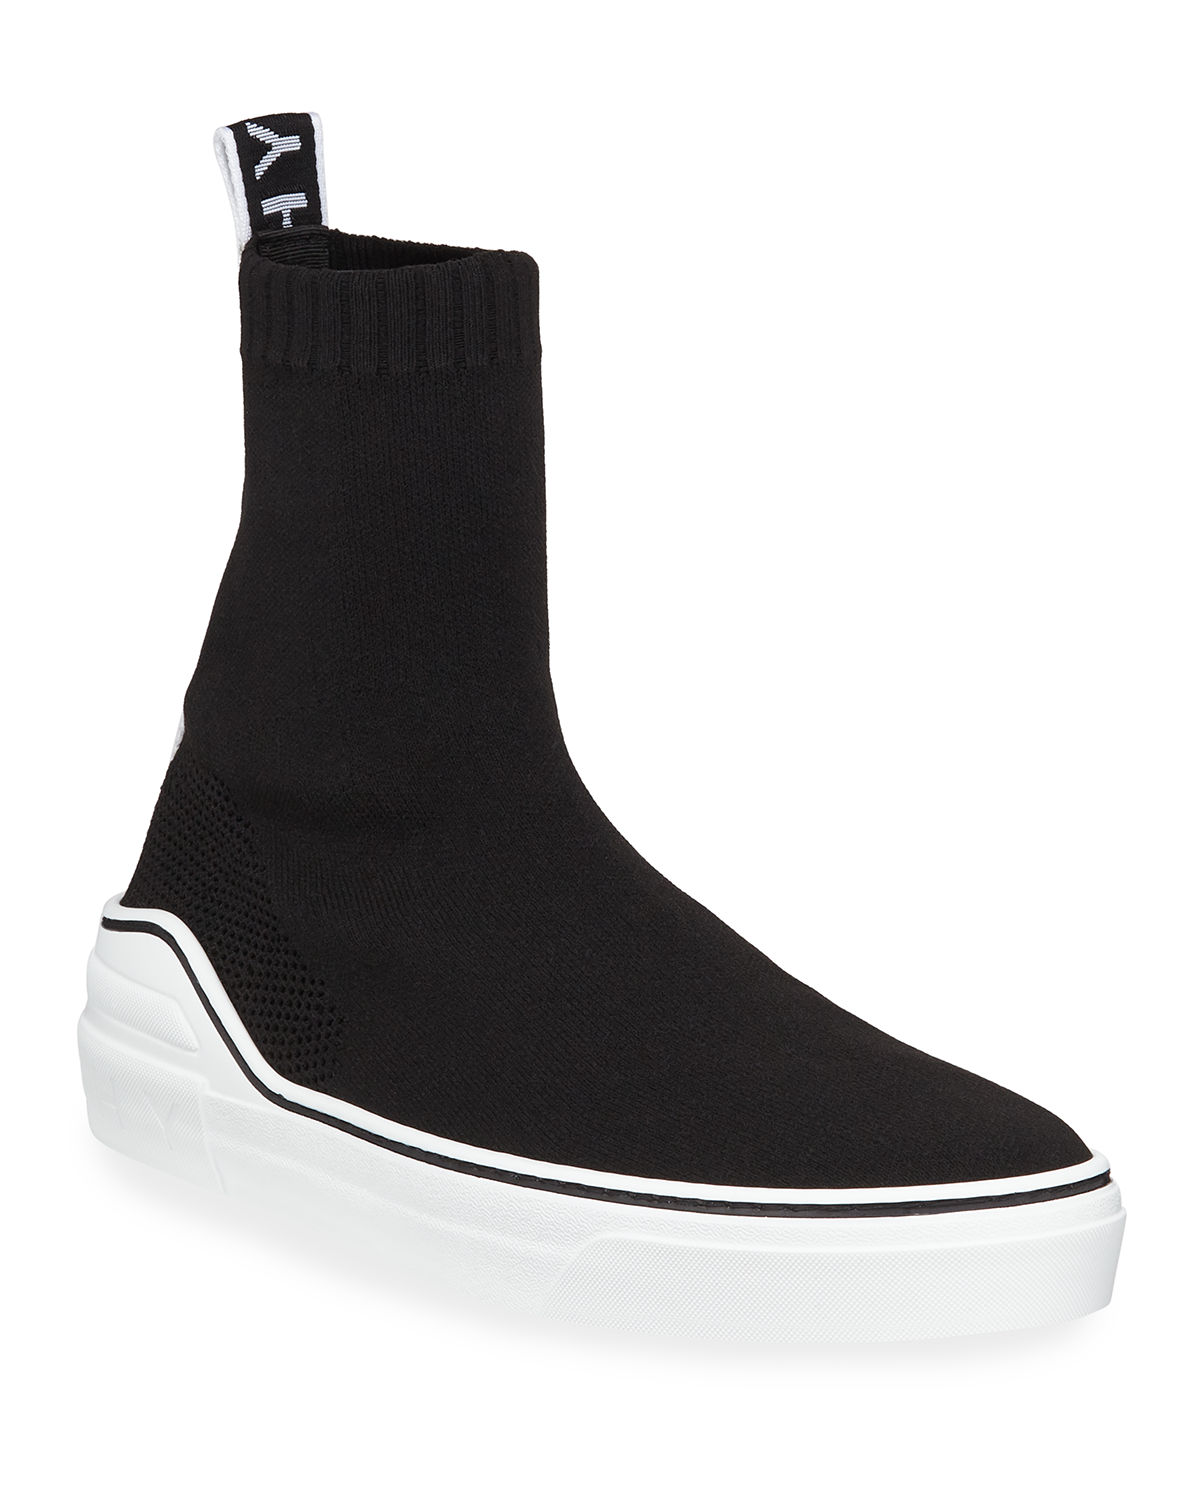 2db5b9a2634 Givenchy Men s George V High-Top Sock Sneakers with Logo